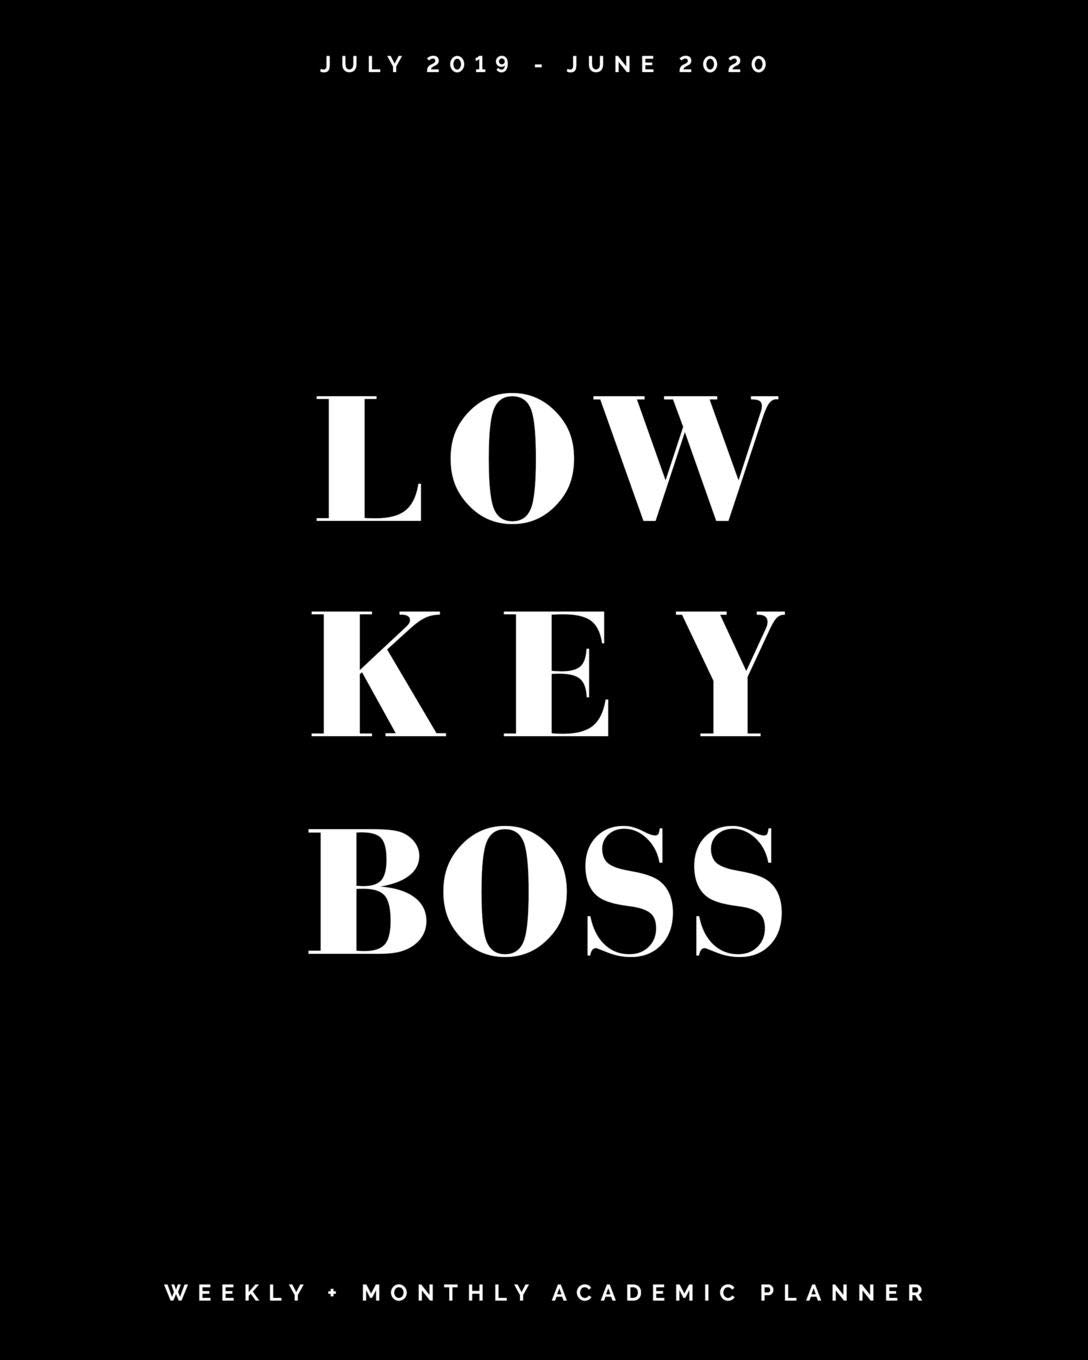 Low Key Boss | July 2019 - June 2020 | Weekly + Monthly ...